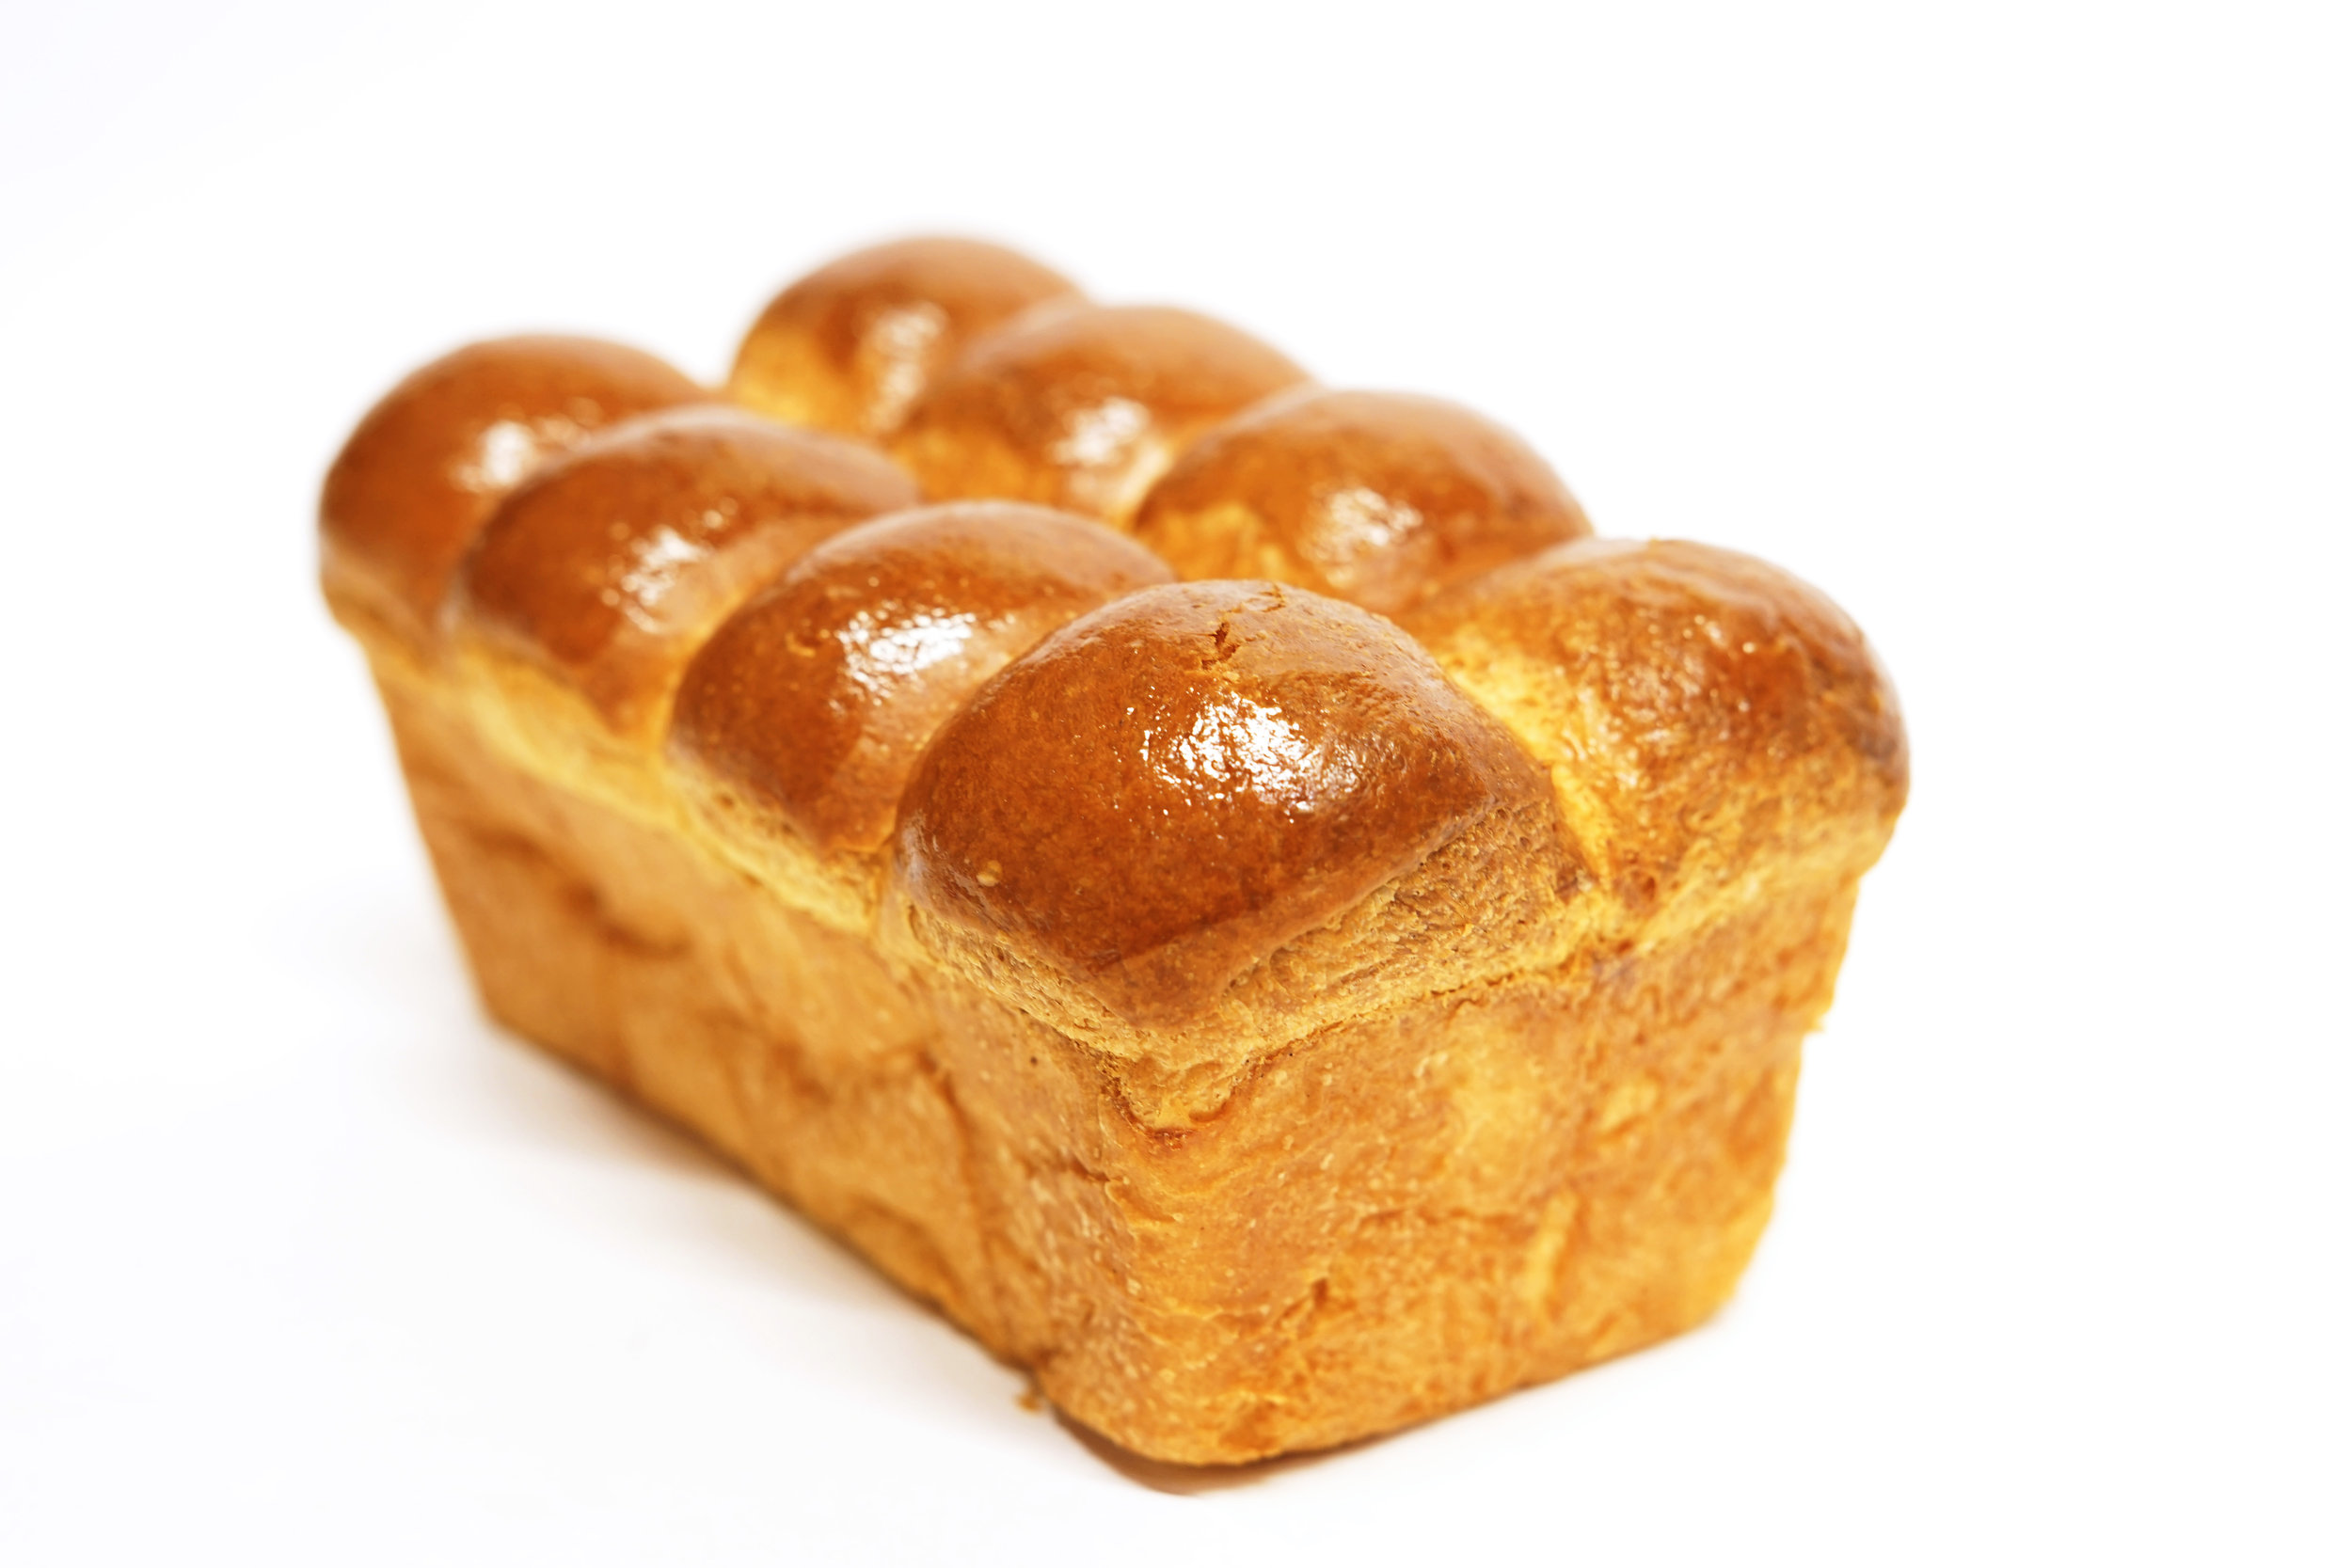 Brioche - This is one of the most beloved recipes. Very light, tender and full of flavor. This egg and butter bread will brighten any breakfast.*Friday and Saturday